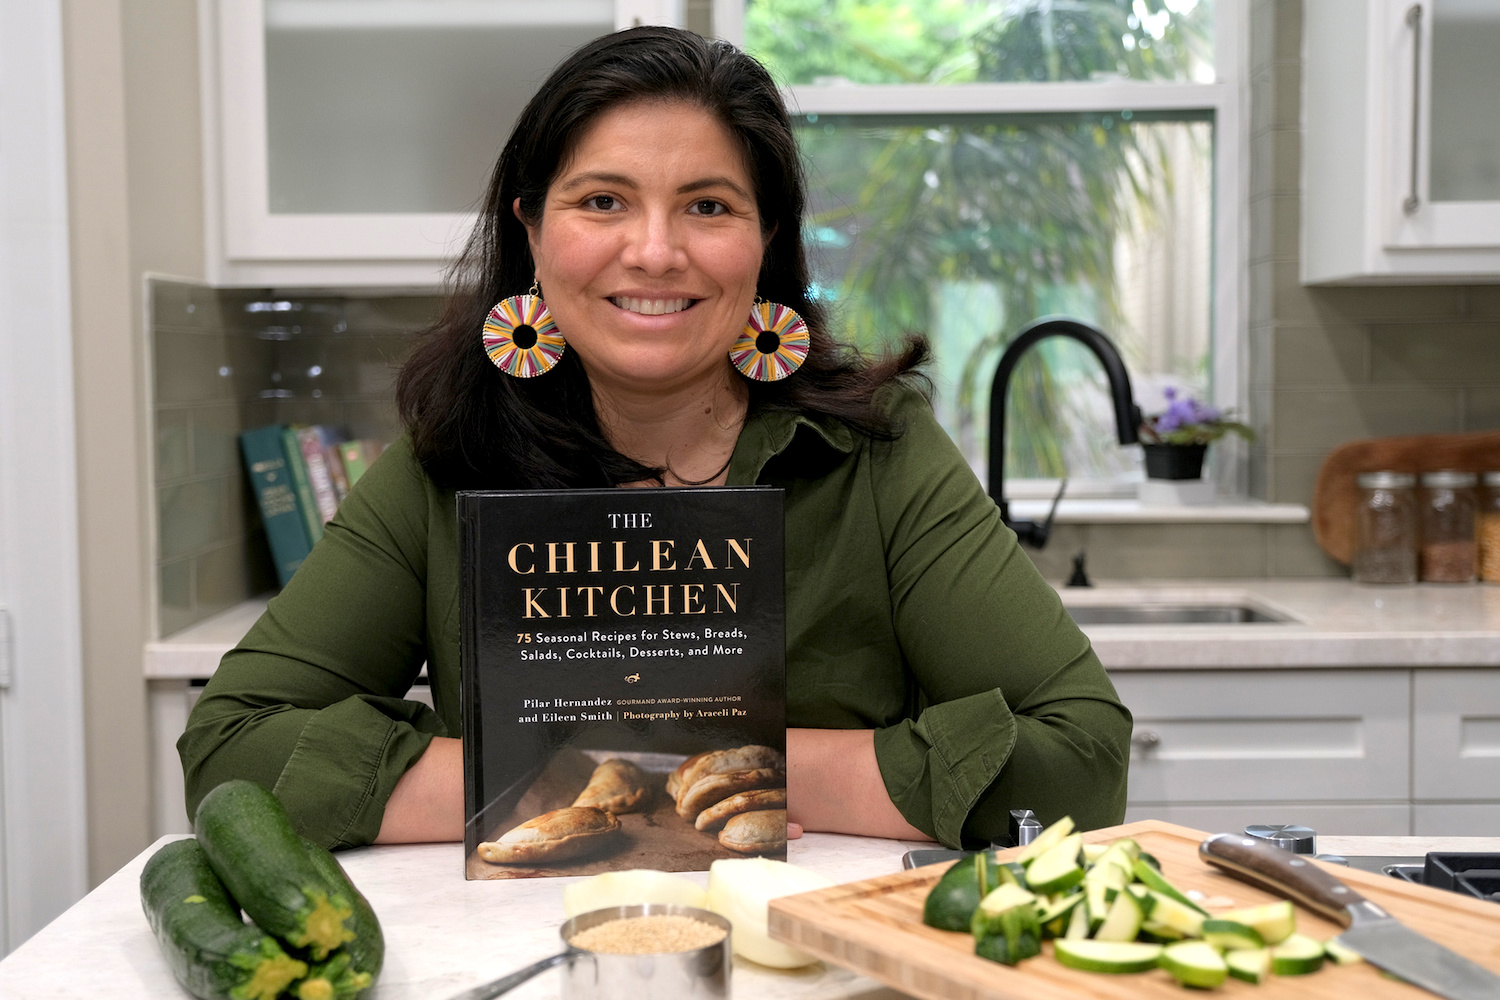 Pilar Hernández and The Chilean Kitchen